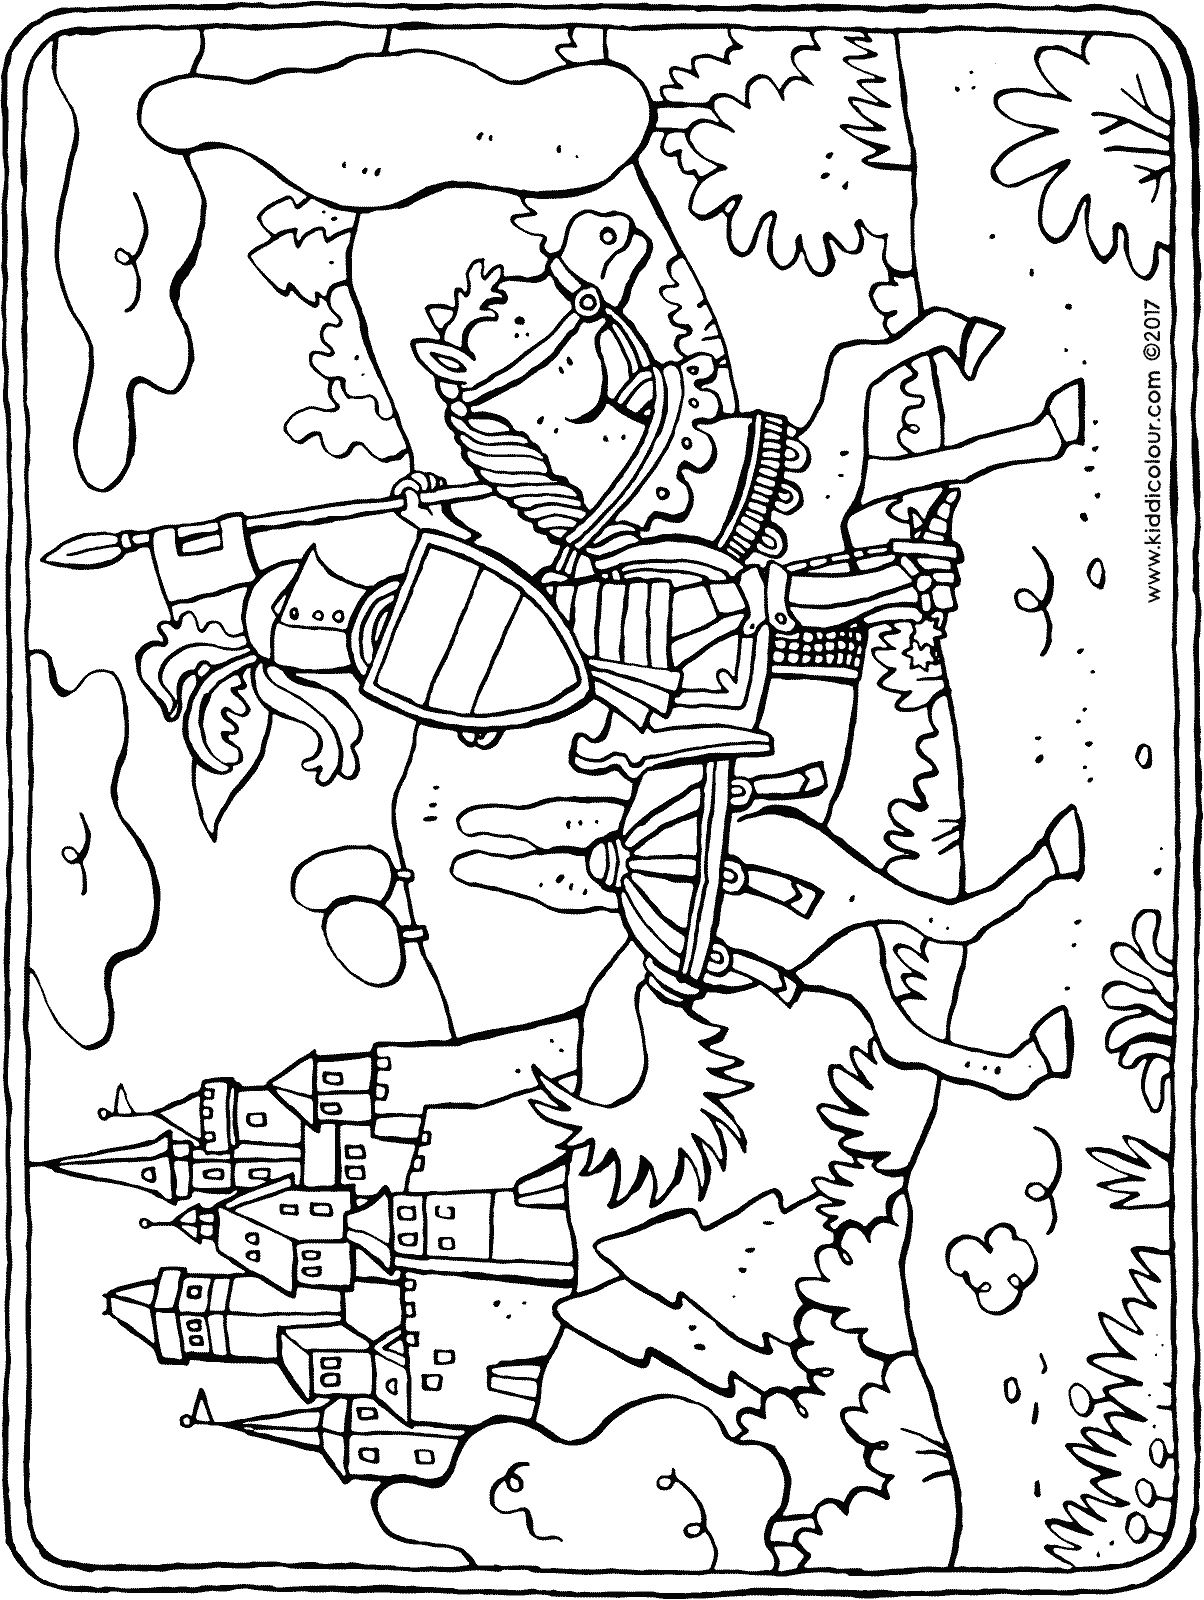 knight on horseback colouring page drawing picture 01H